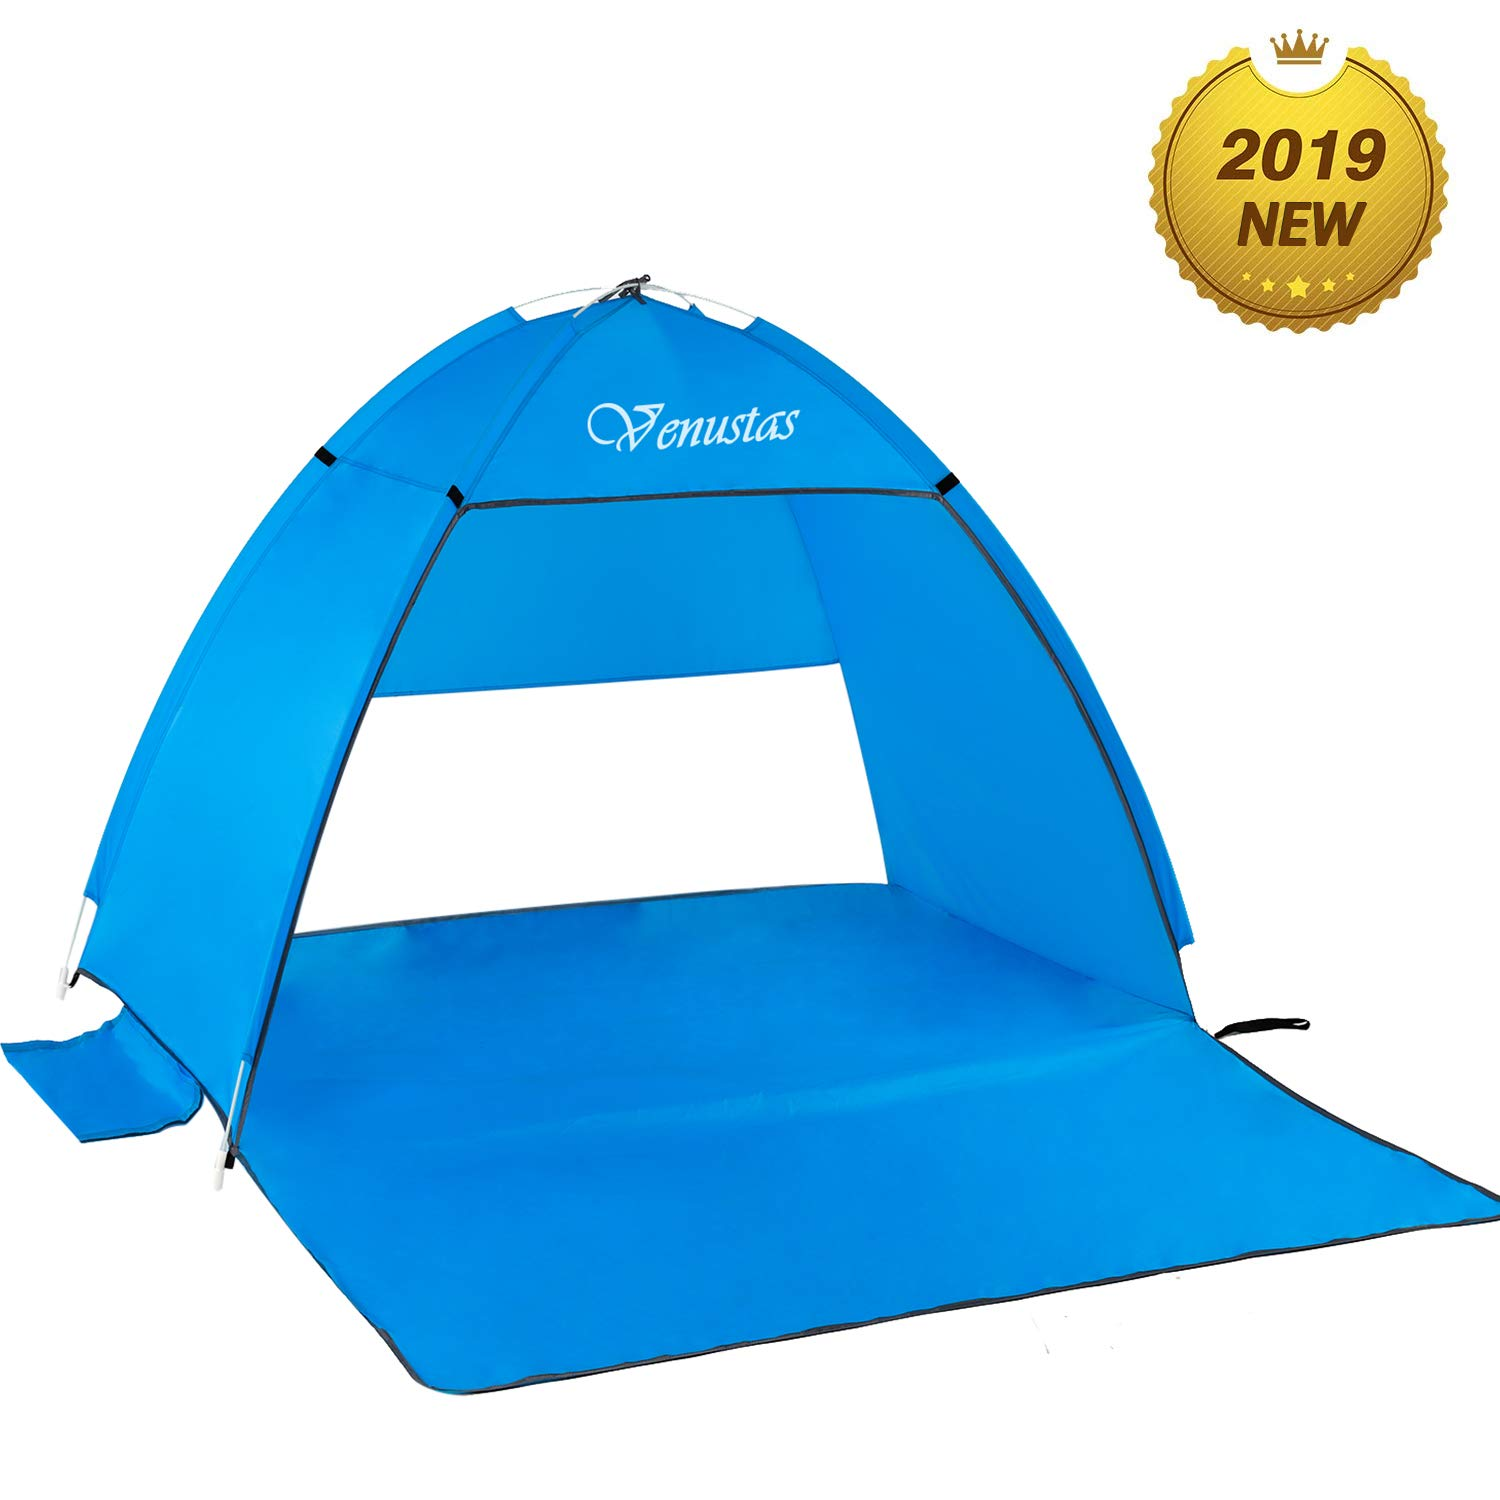 Venustas Large Pop Up Beach Tent Automatic Sun Shelter Cabana Easy Set Up Light Weight Camping Fishing Tents 2-3 Person Anti-UV Portable Sunshade for Family Adults by Venustas